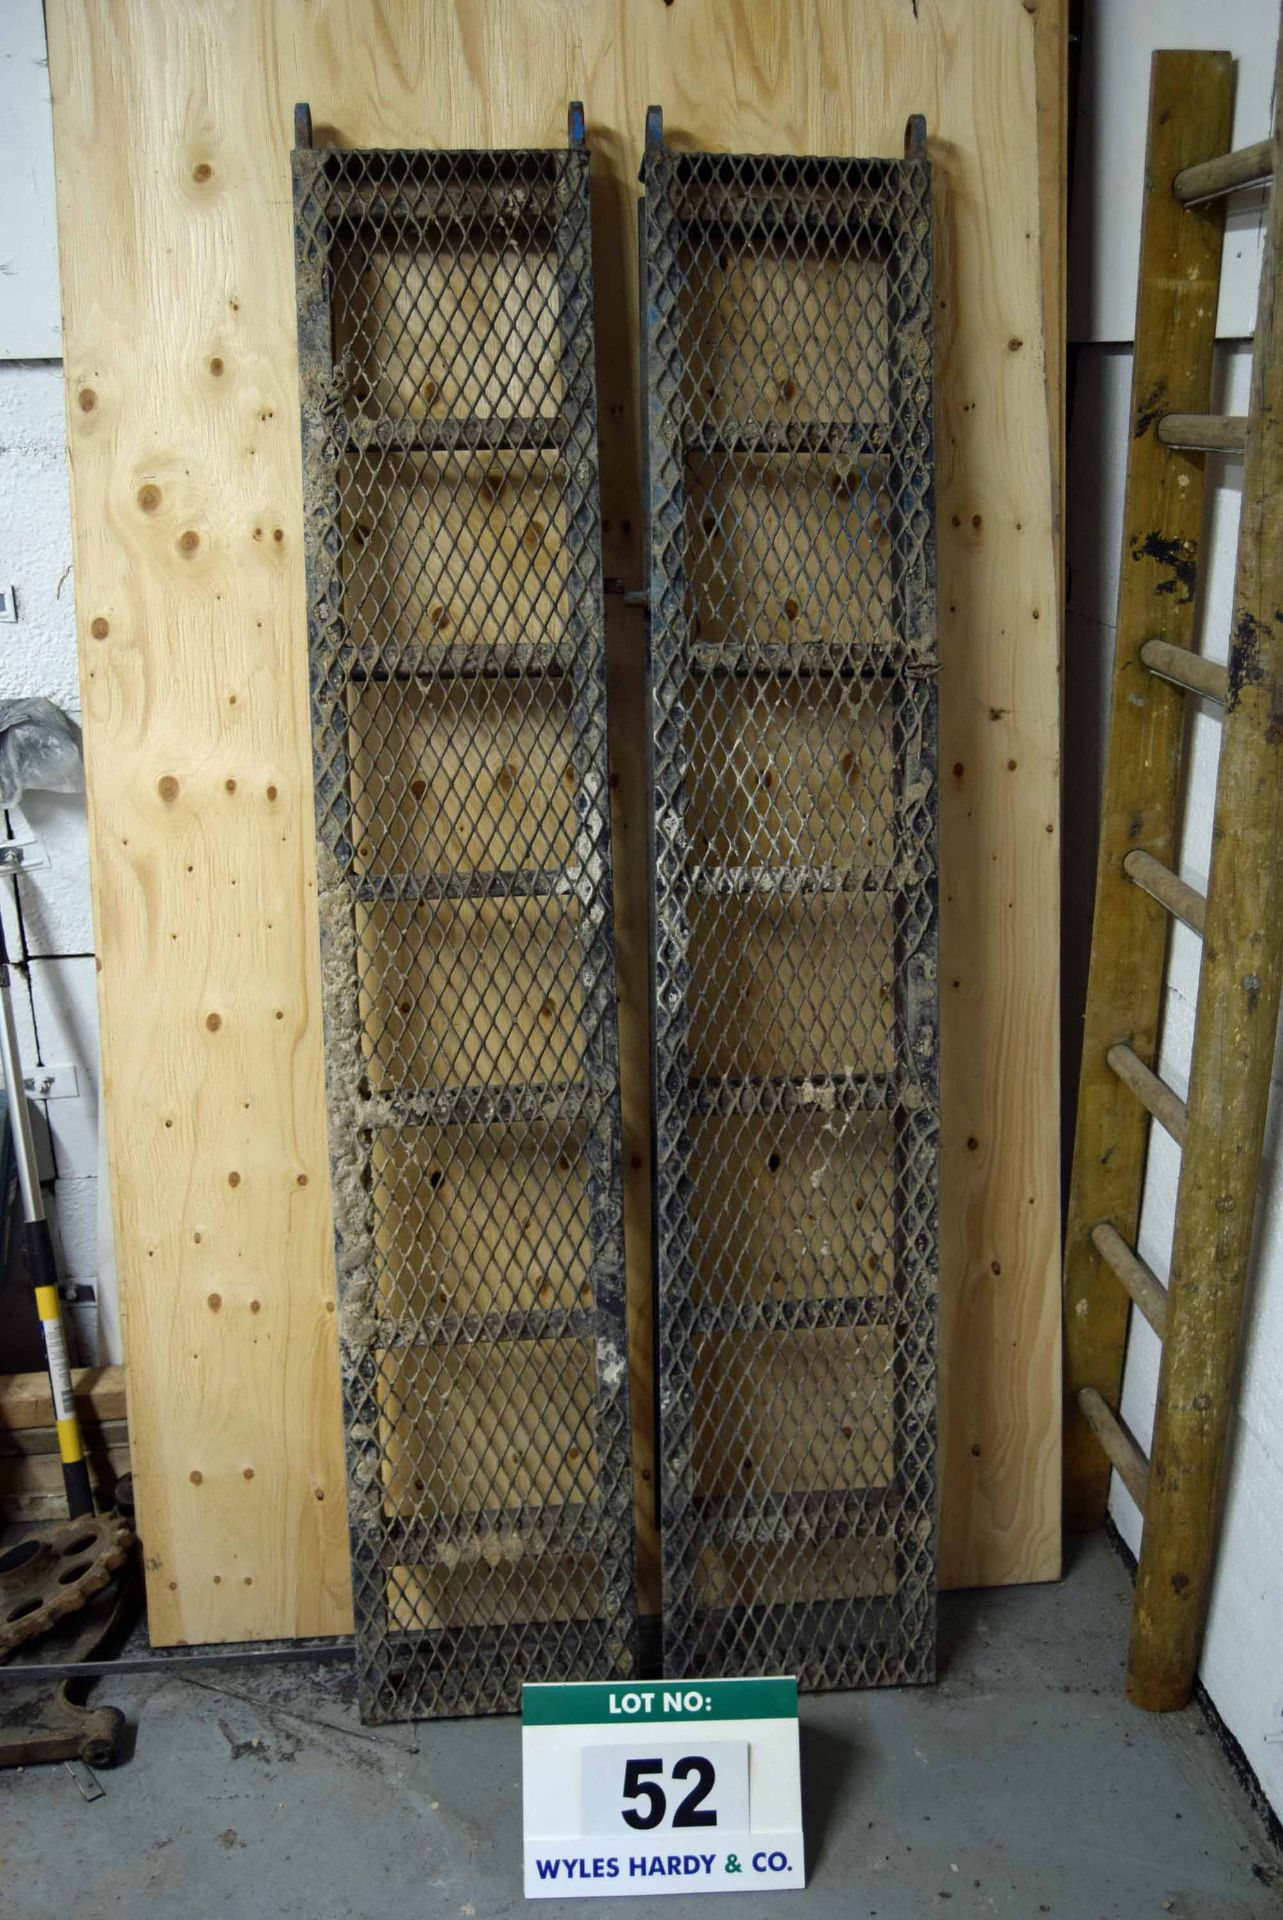 Lot 52 - A Pair of 6ft x 13.5 Inch Steel Framed Mesh Topped Plant Trailer Ramps